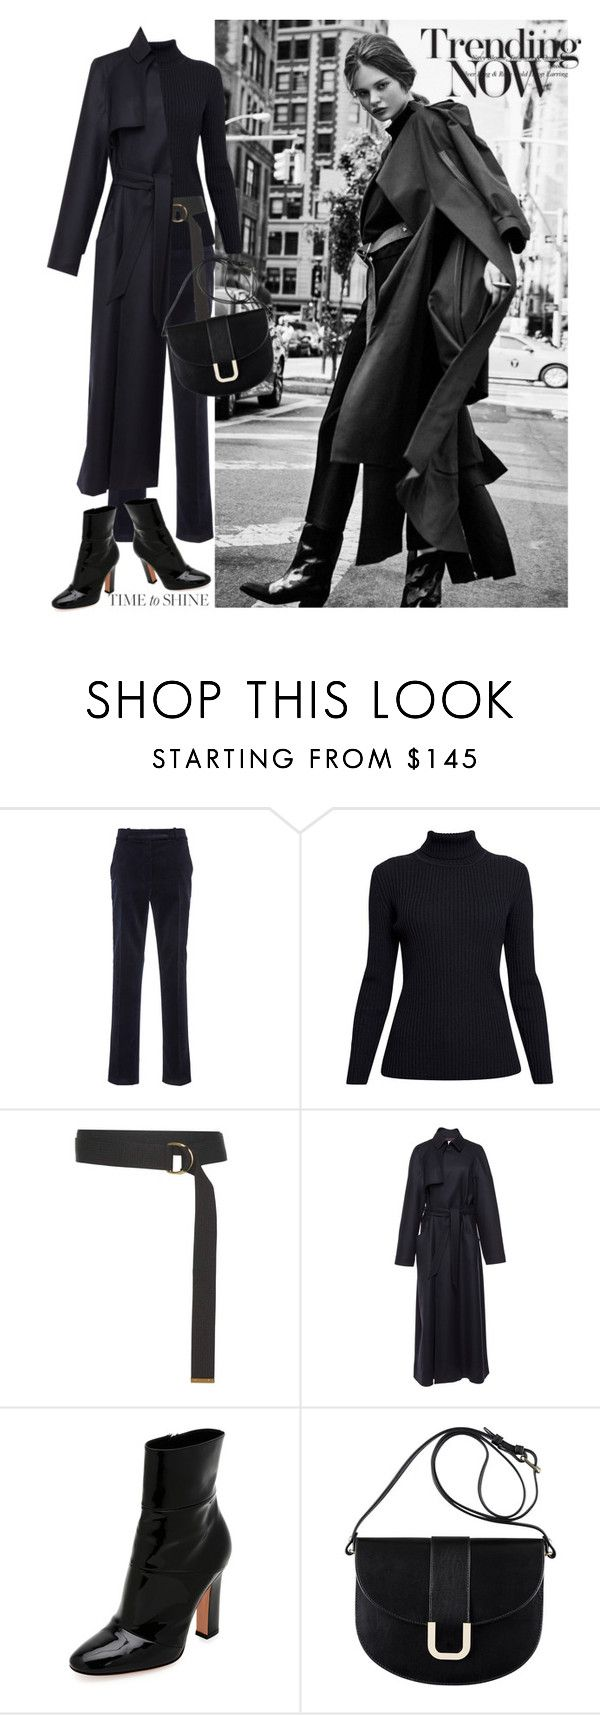 """Looking Smart"" by jacque-reid ❤ liked on Polyvore featuring Martin Grant, Rumour London, Marni, Gianvito Rossi and A.P.C."